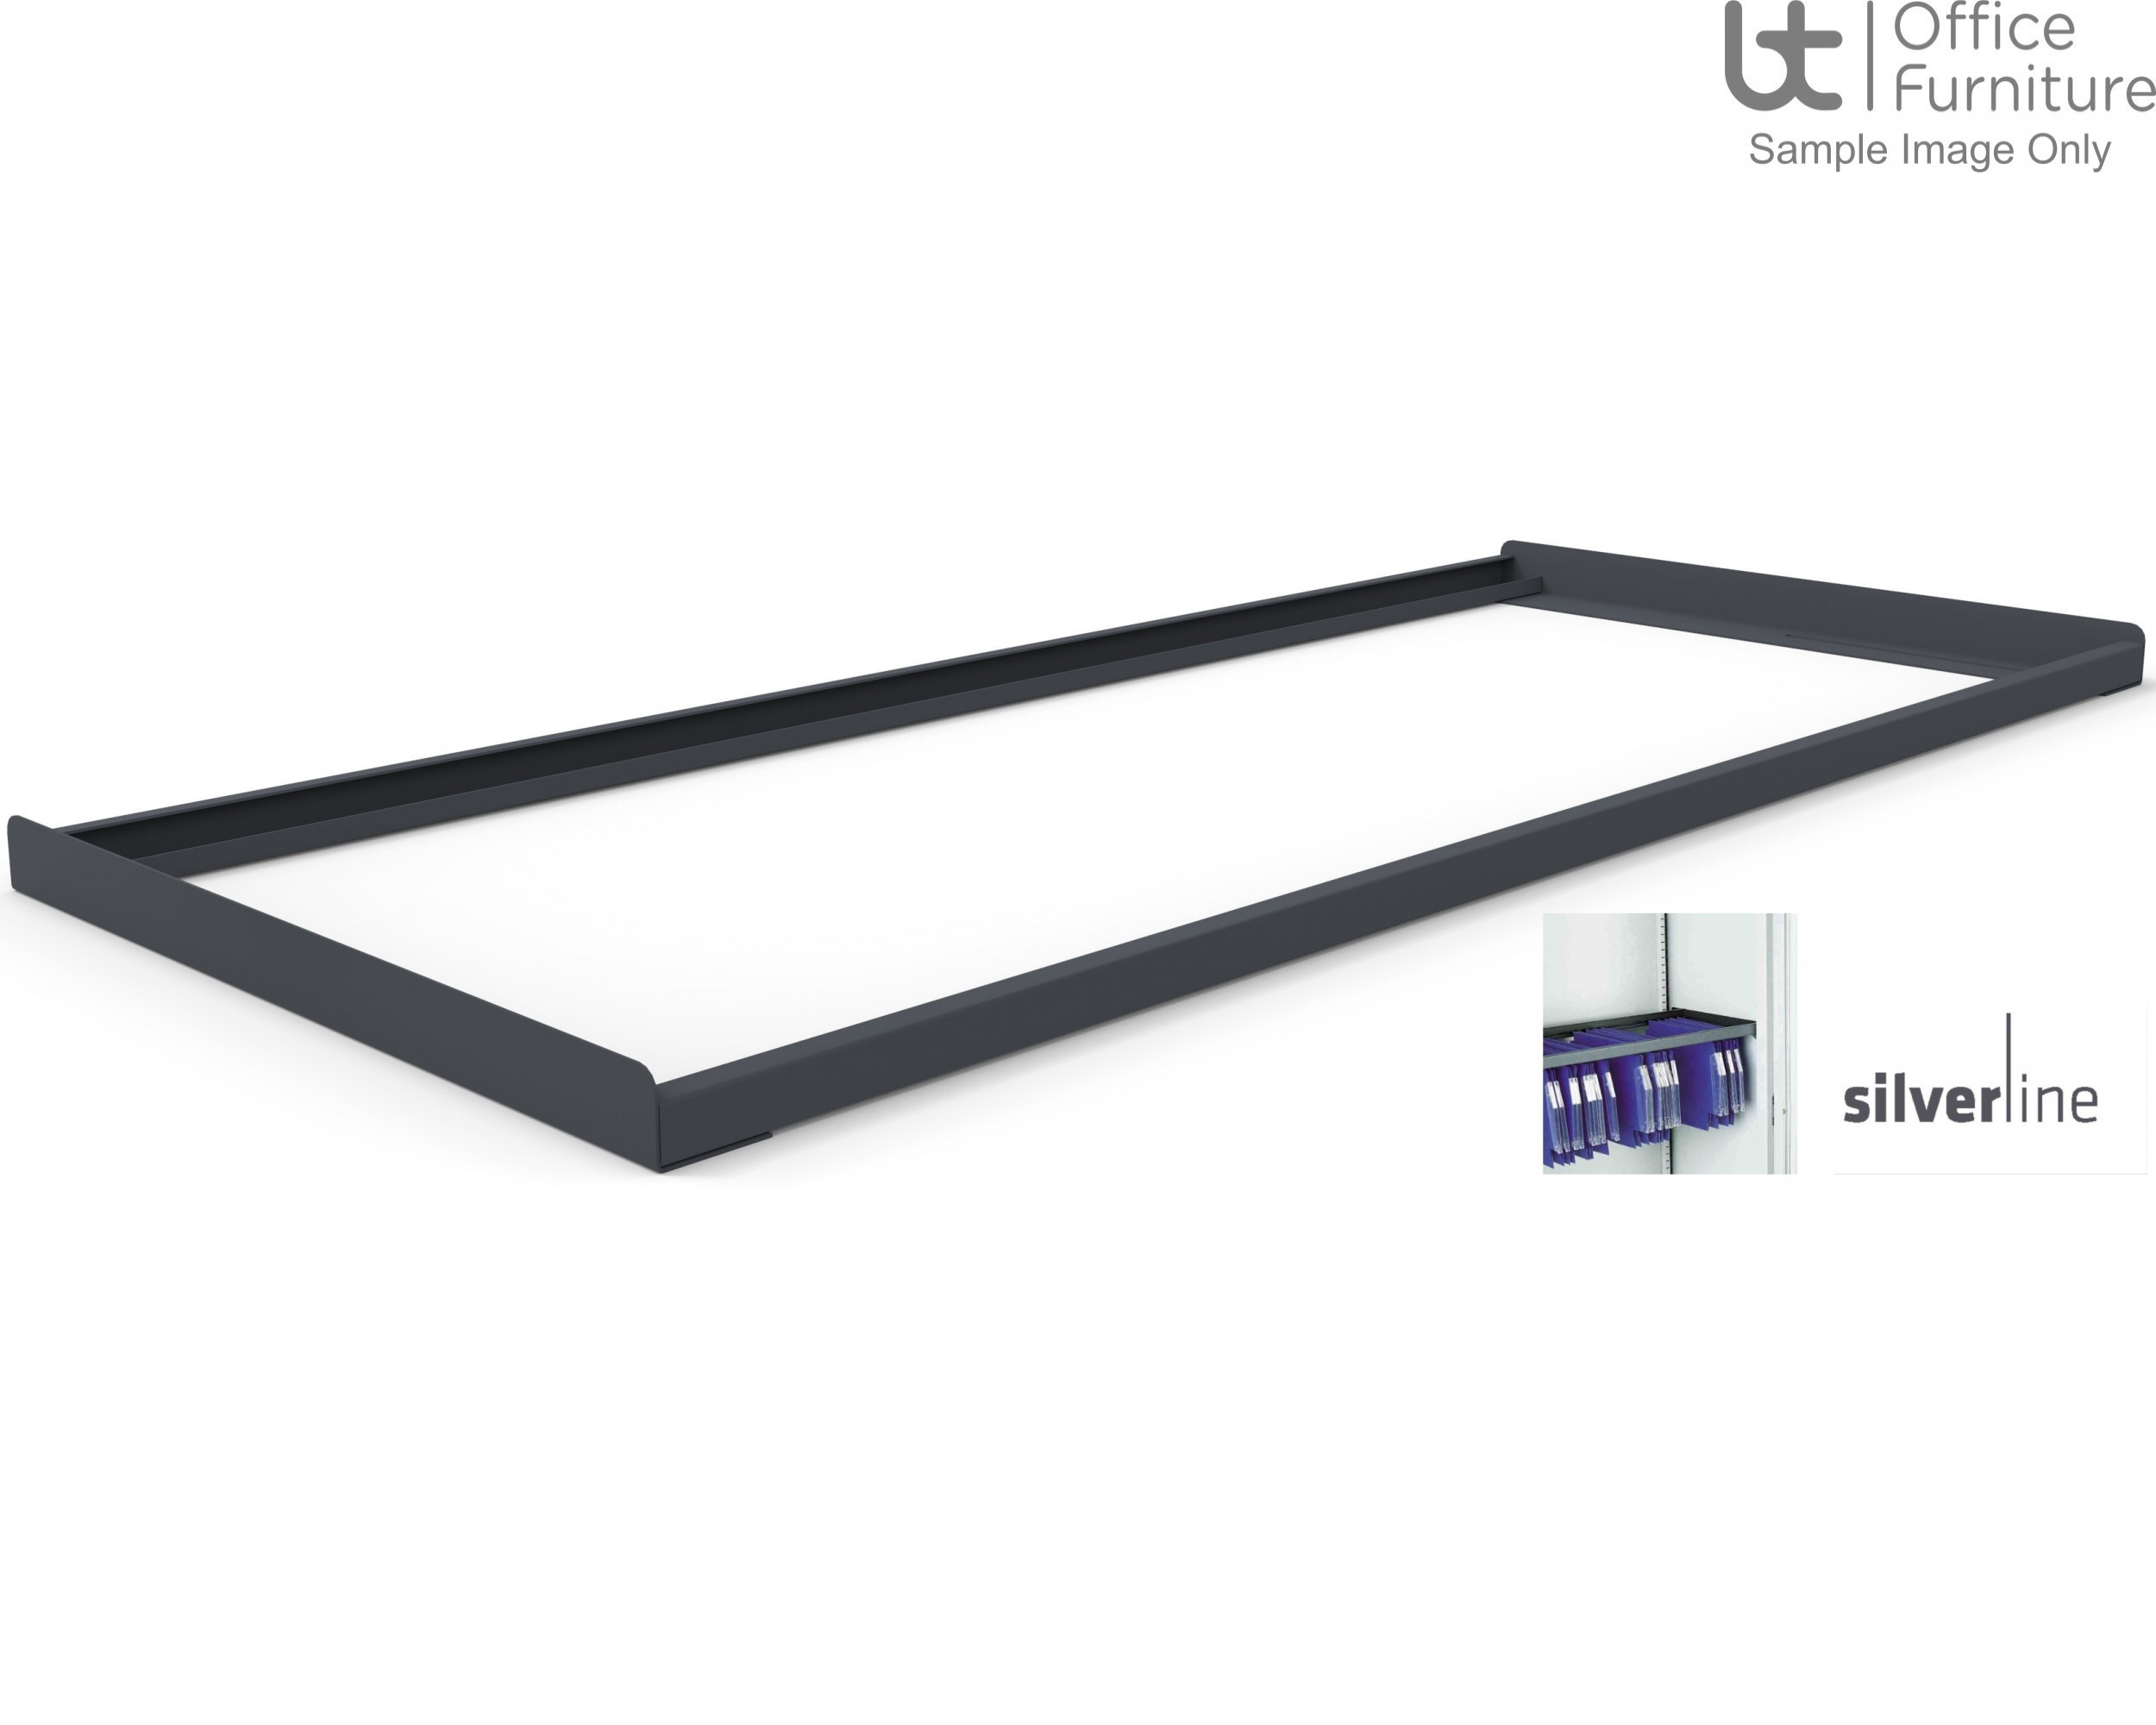 Silverline M:Line Cupboard Accessories - Lateral Filing Frame